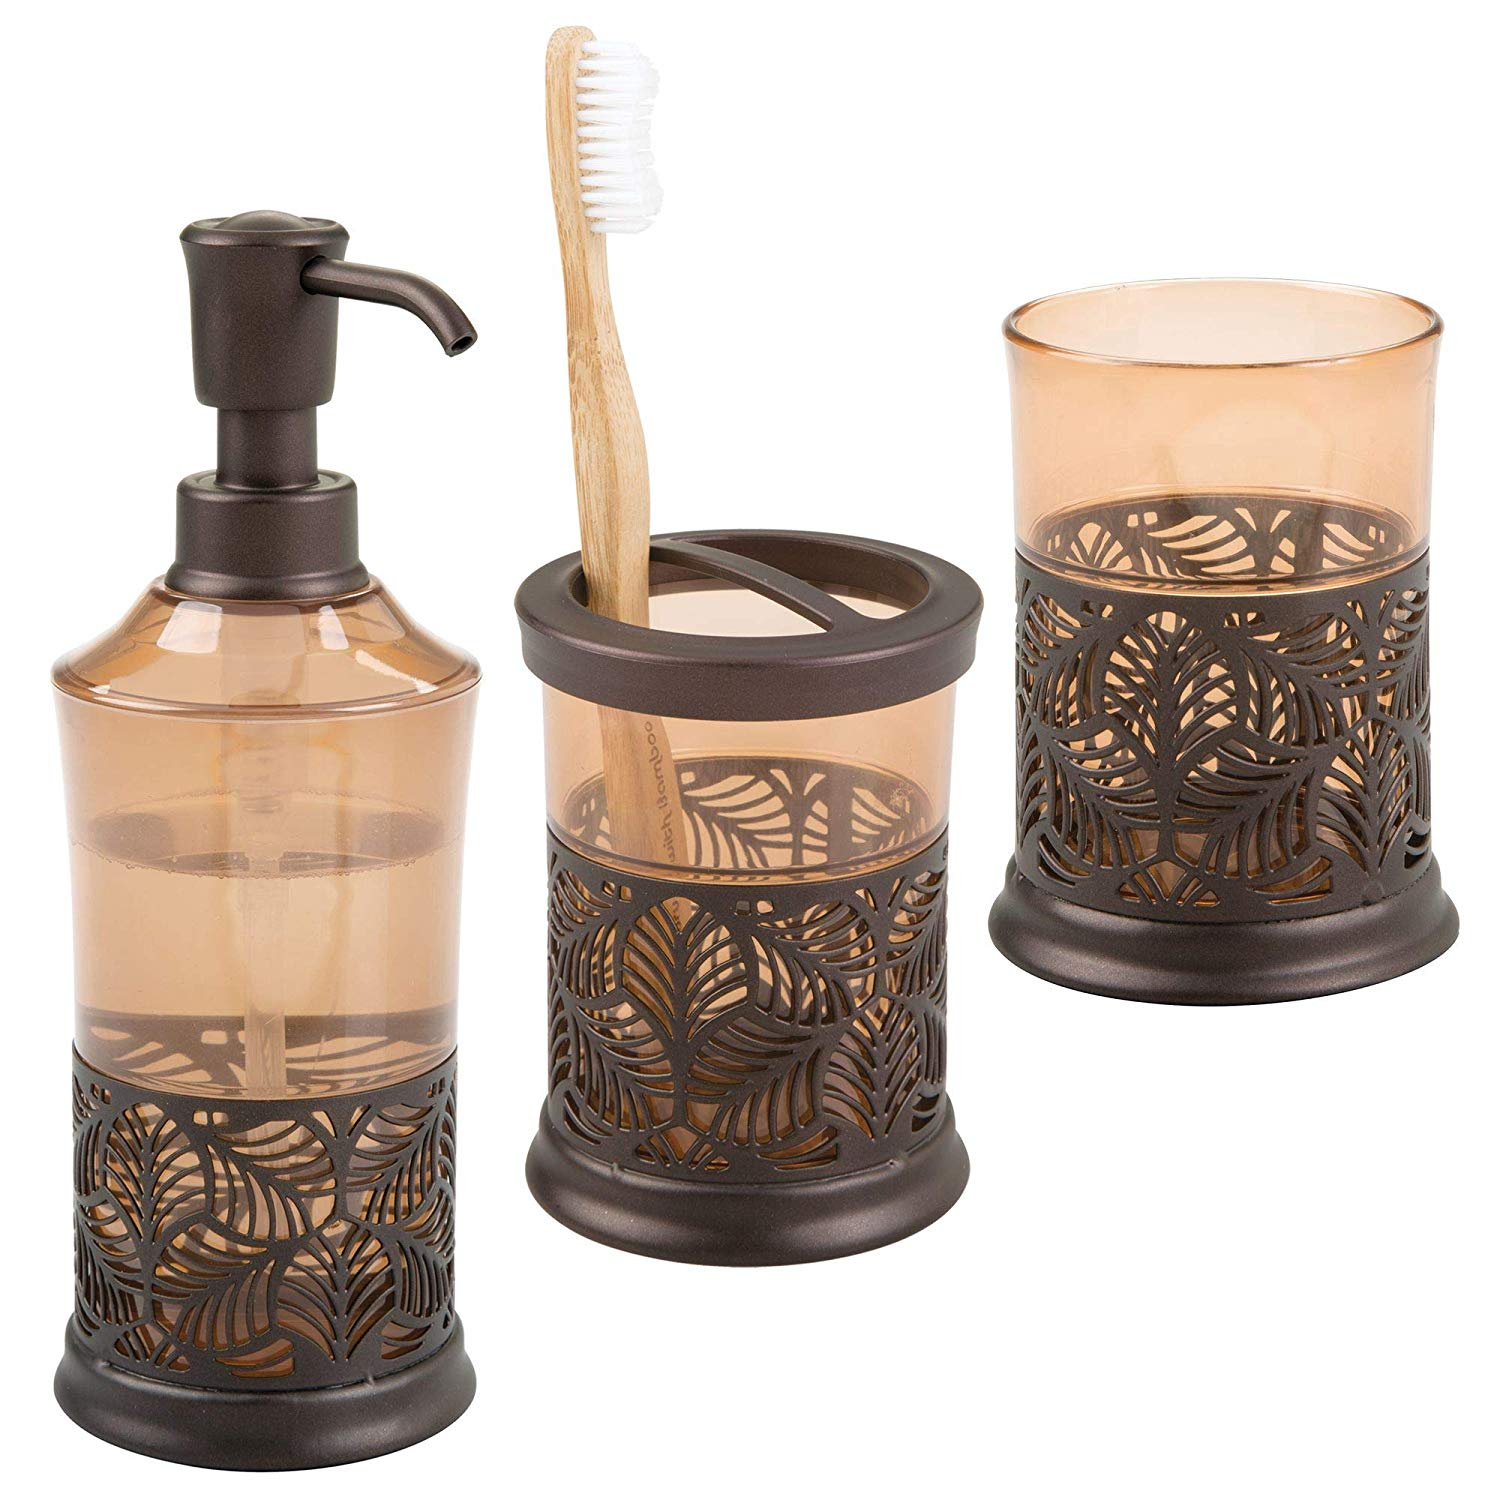 mDesign Decorative Bath Accessory Set with Leaf Design for Bathroom Vanity Countertops and Sinks, Includes Hand Soap Dispenser, Toothbrush Holder and Tumbler - Set of 3, Sand/Bronze